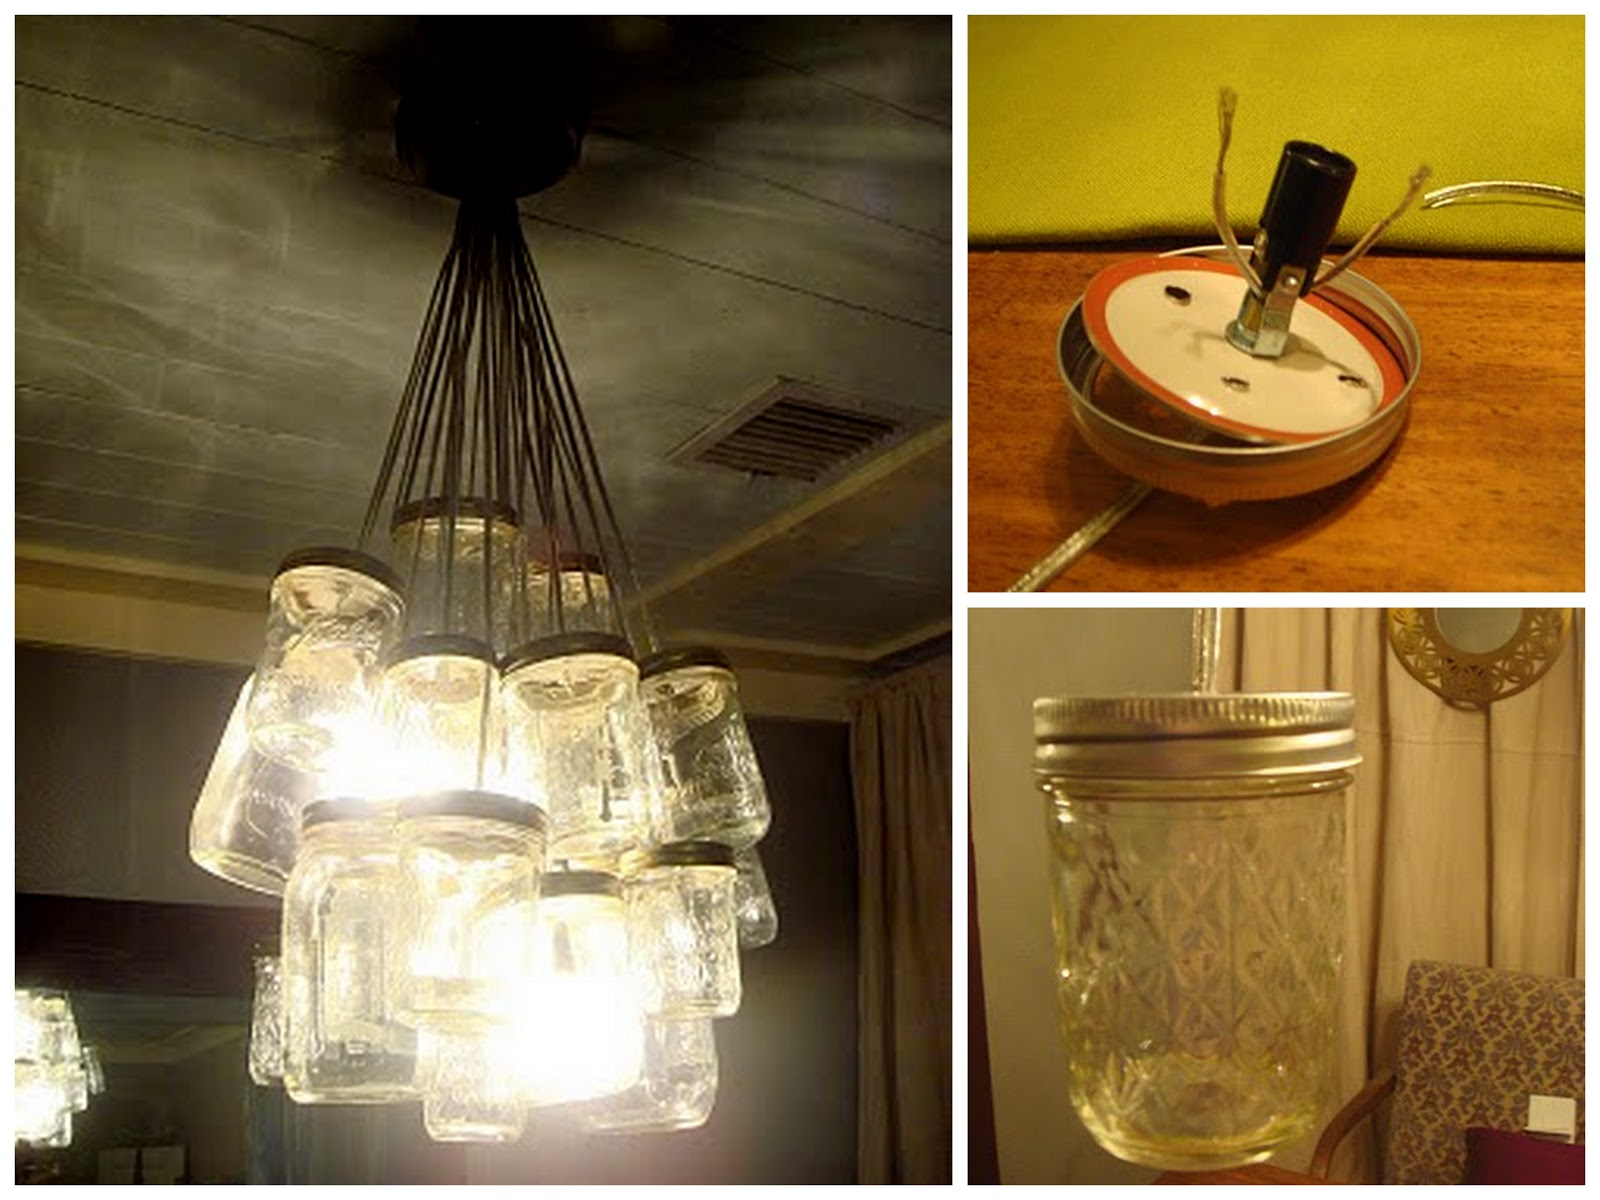 Nine red how to mason jar chandelier tutorial i love it they did such a great job on this ive seen quite a few mason jar lights but mostly singles or in groups of 3 4 this chandelier takes it to arubaitofo Choice Image